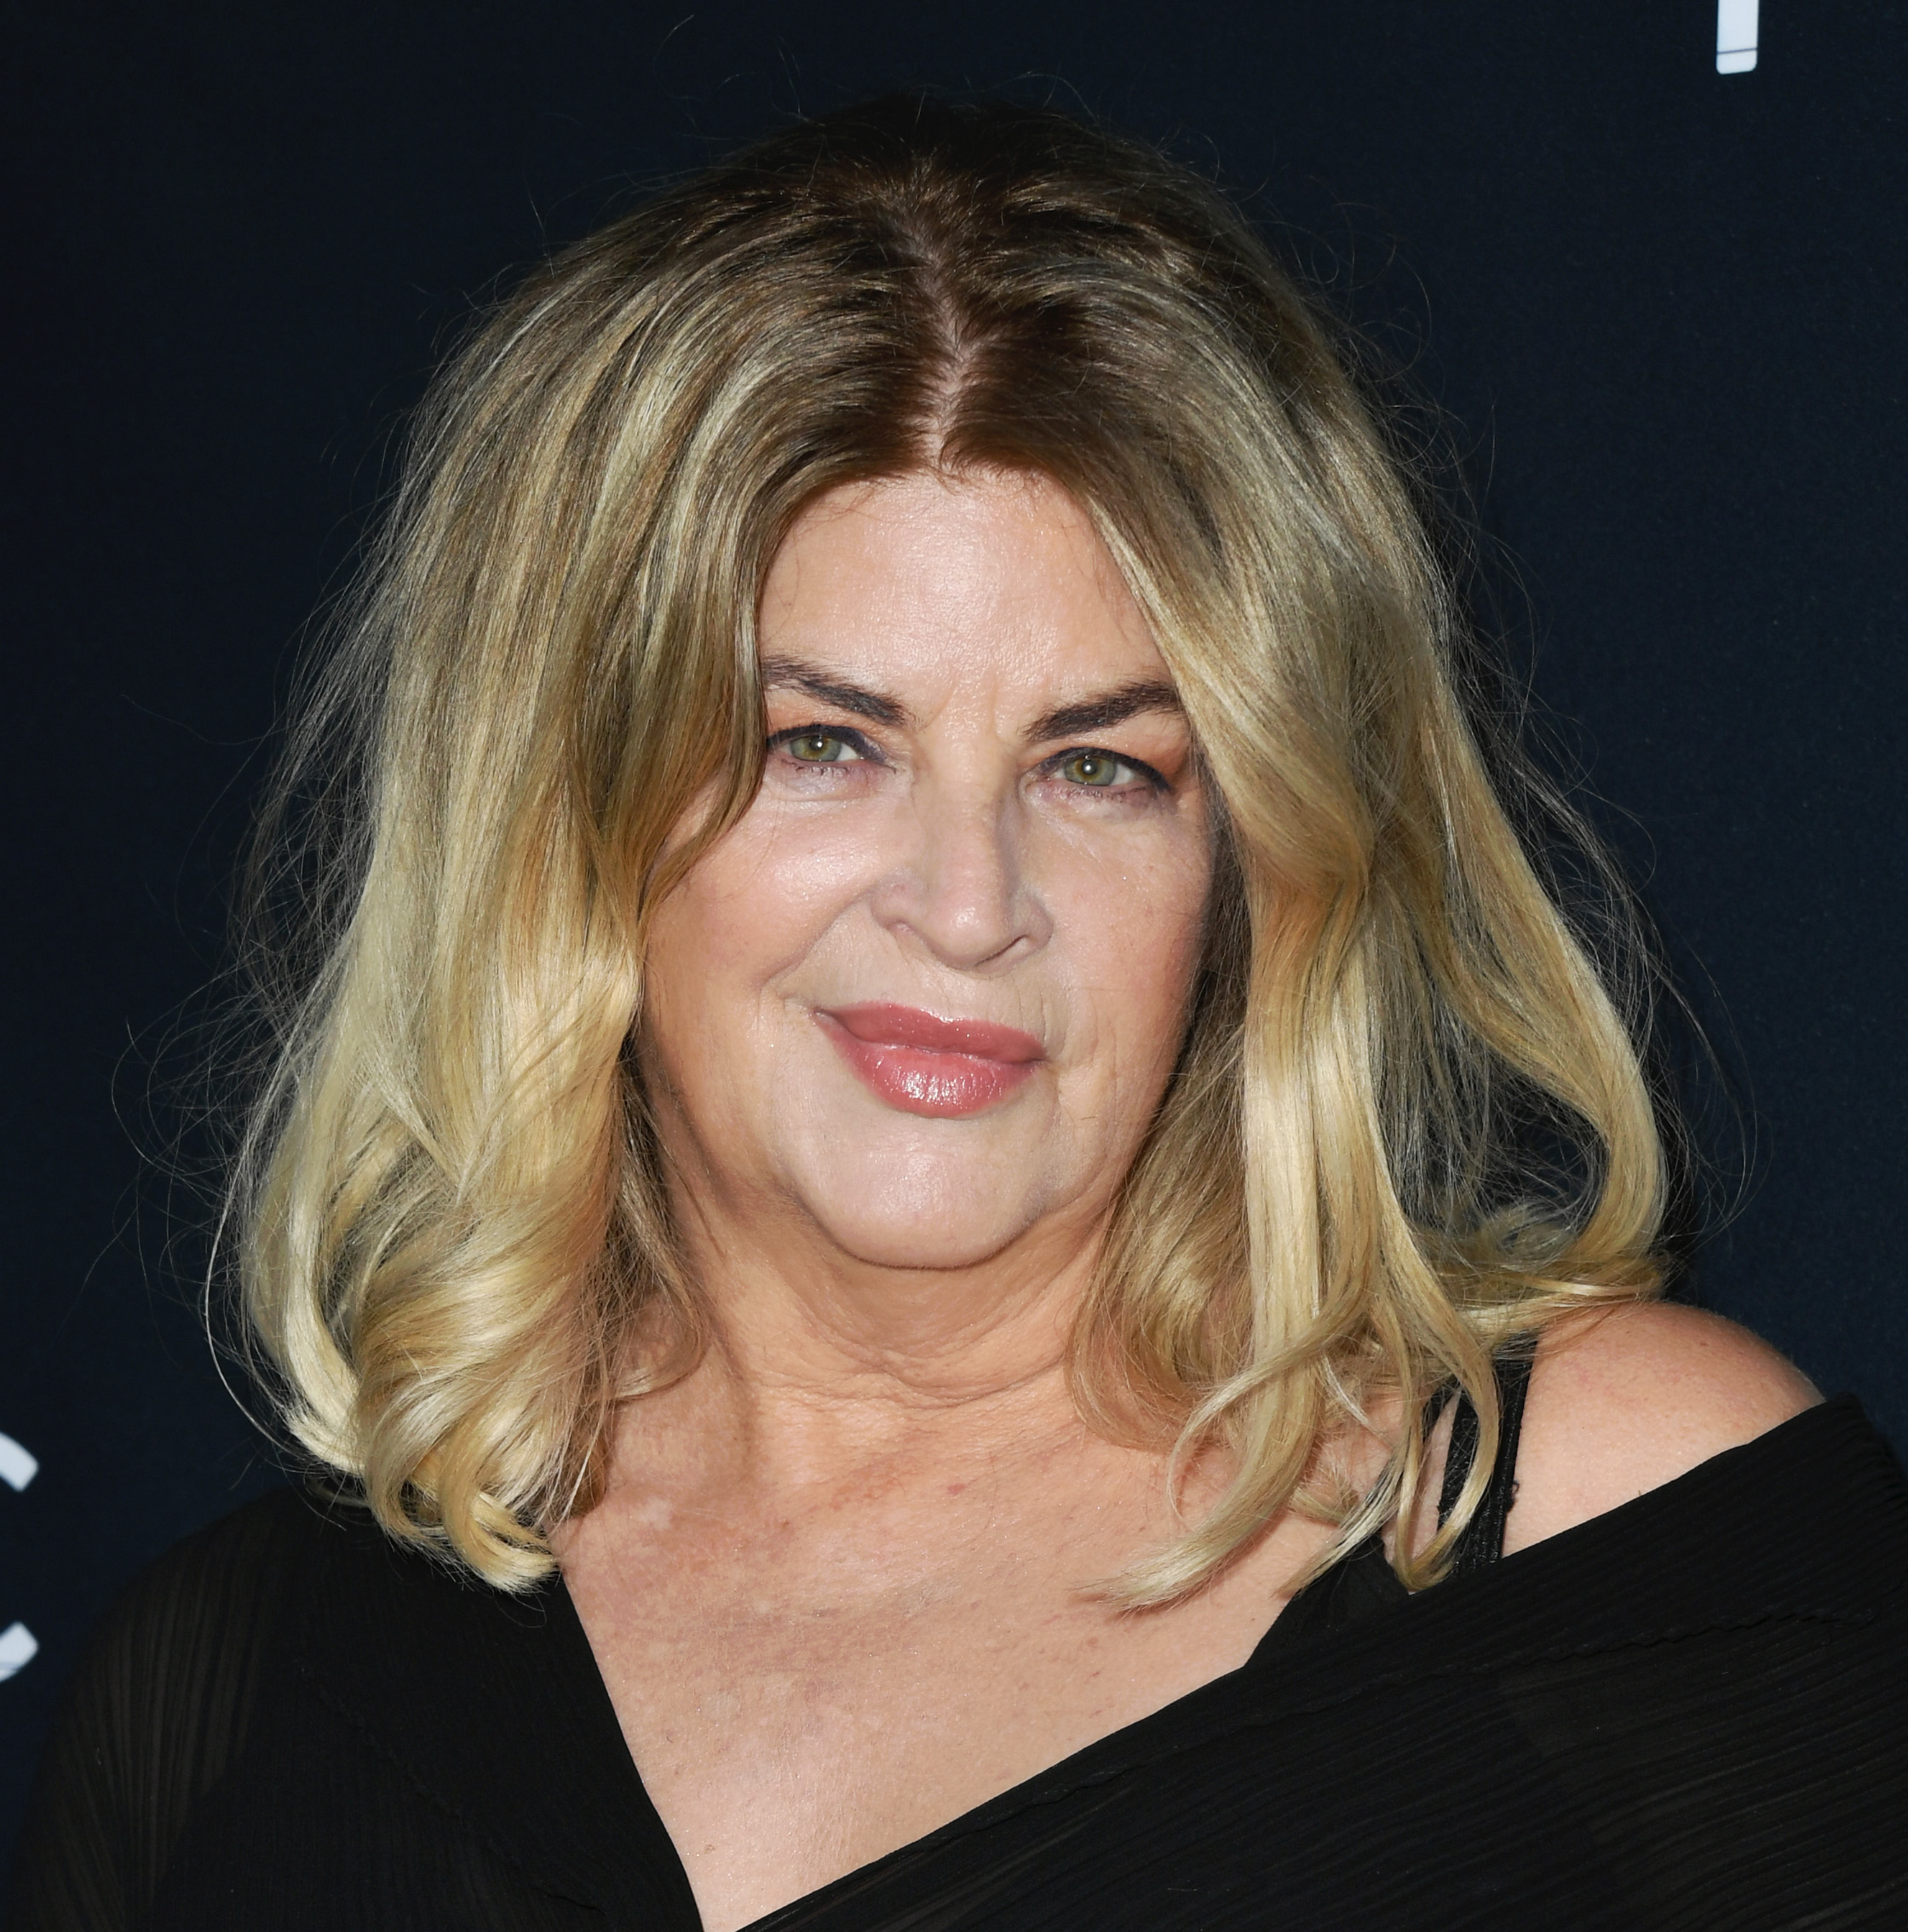 Kirstie Alley has declared her support for President Donald Trump. (Photo:Jon Kopaloff/FilmMagic)